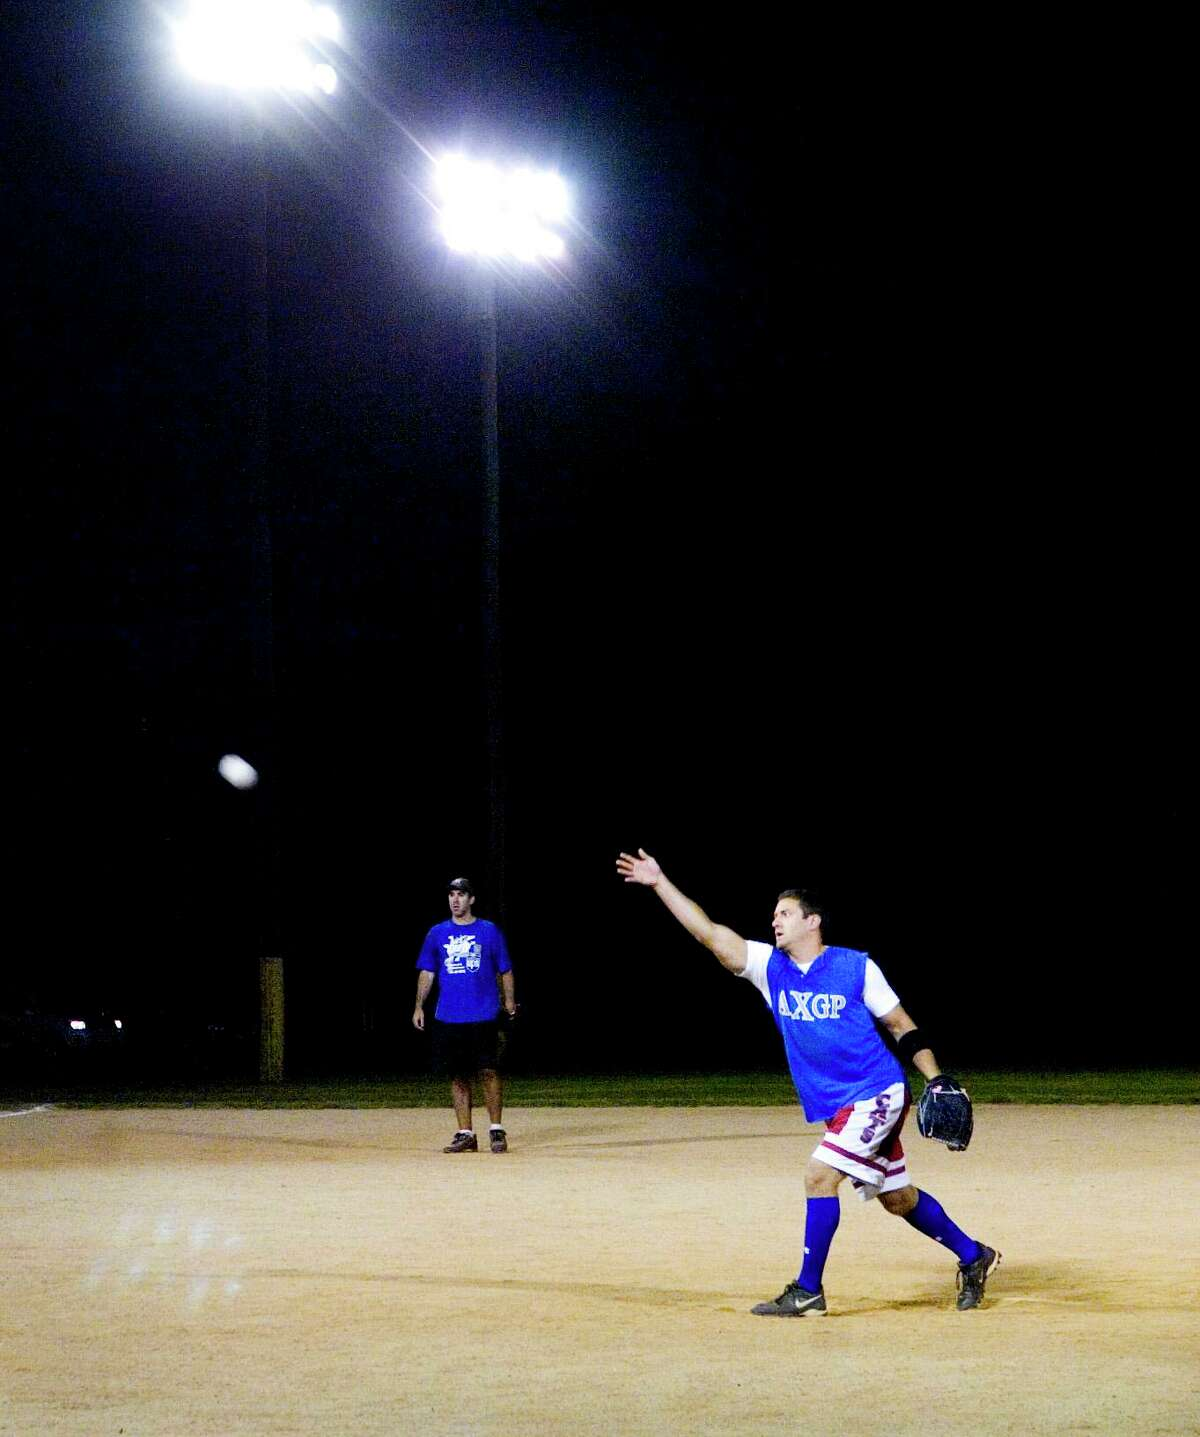 A pitcher throws to the plate during a league softball game at Scalzi Park.